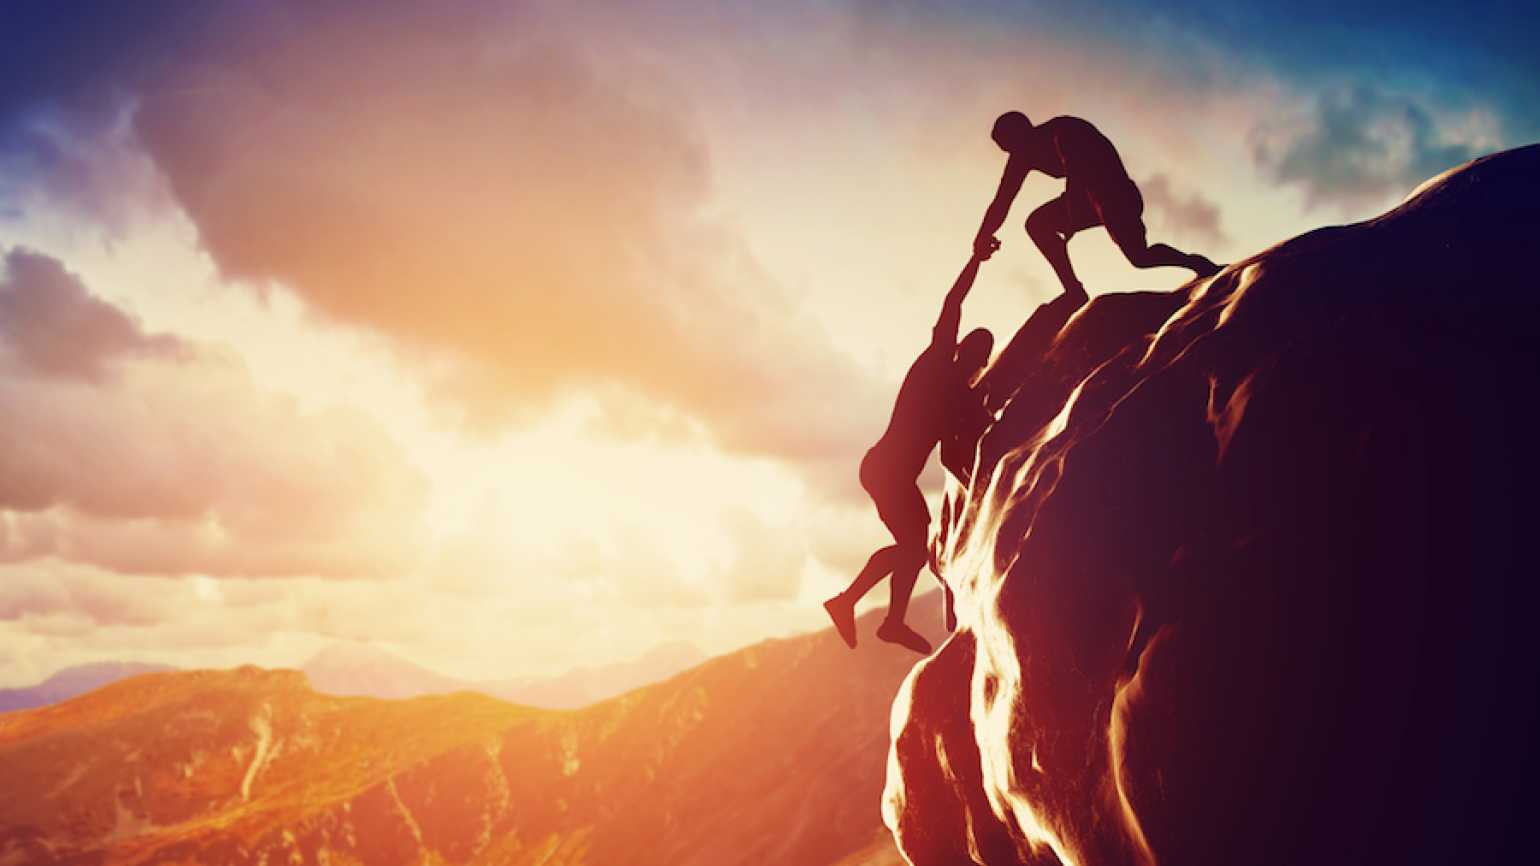 Man helping another man up a cliff. Shutterstock.